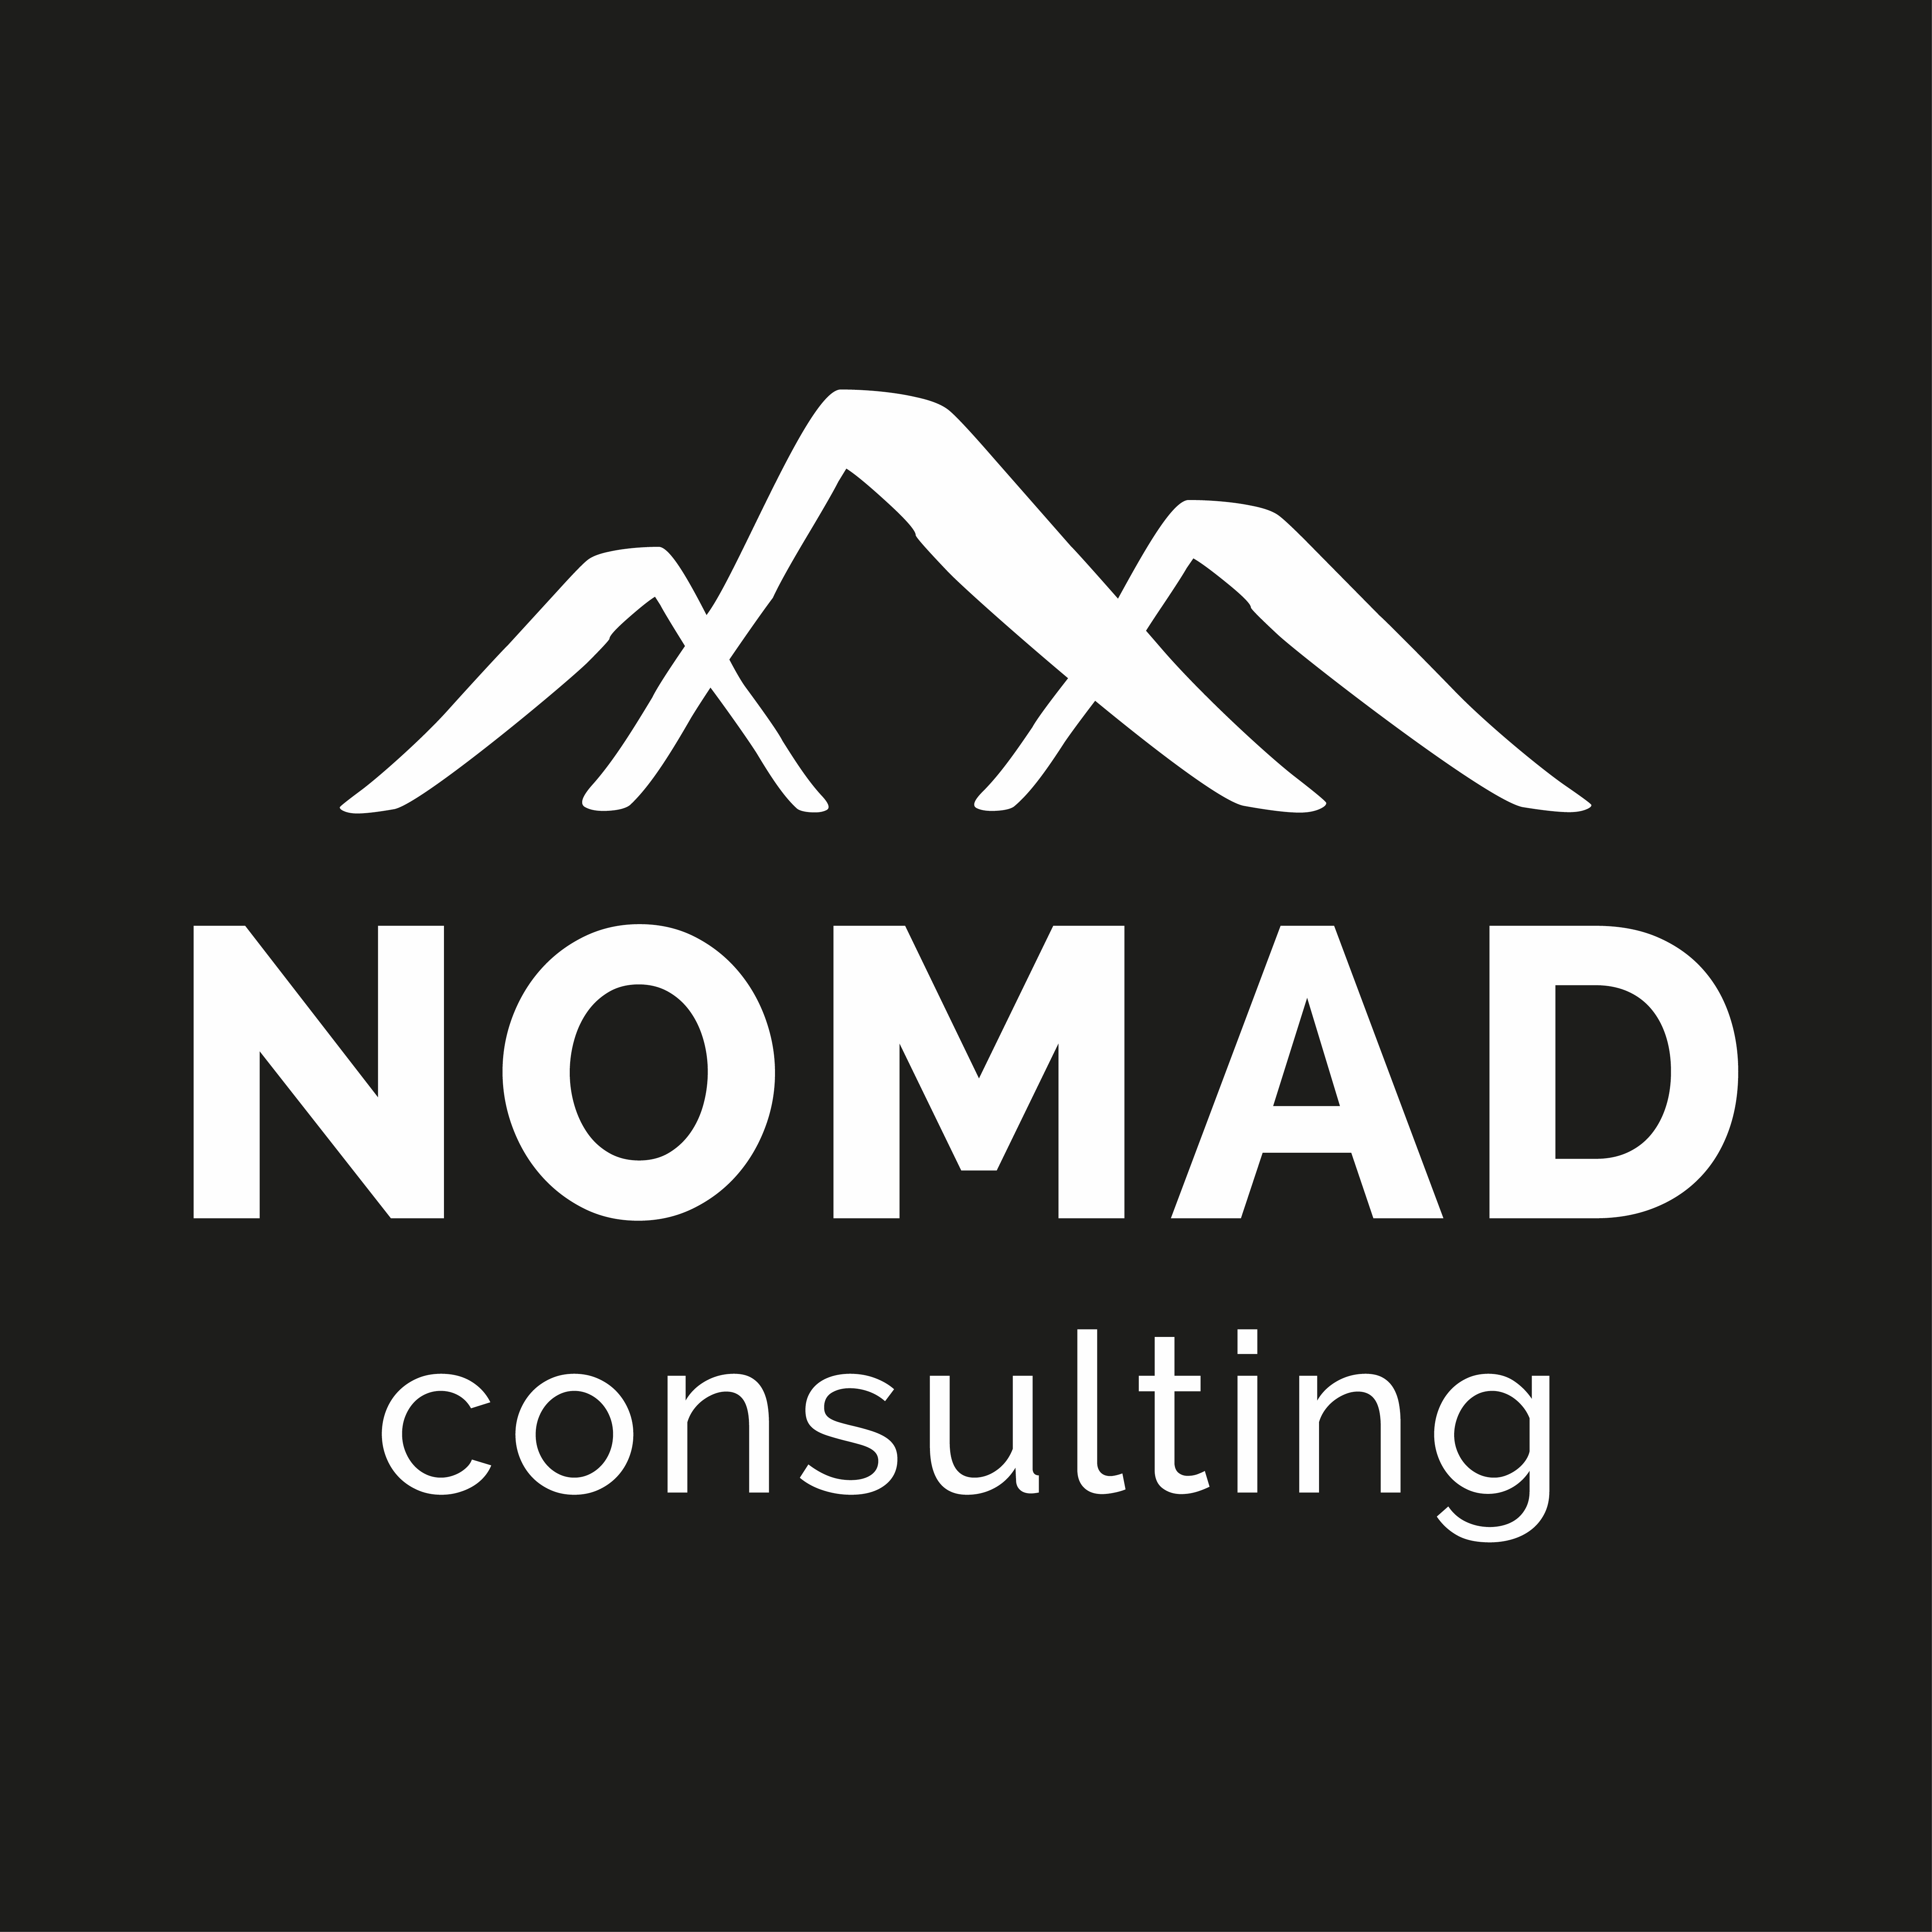 NOMAD Consulting